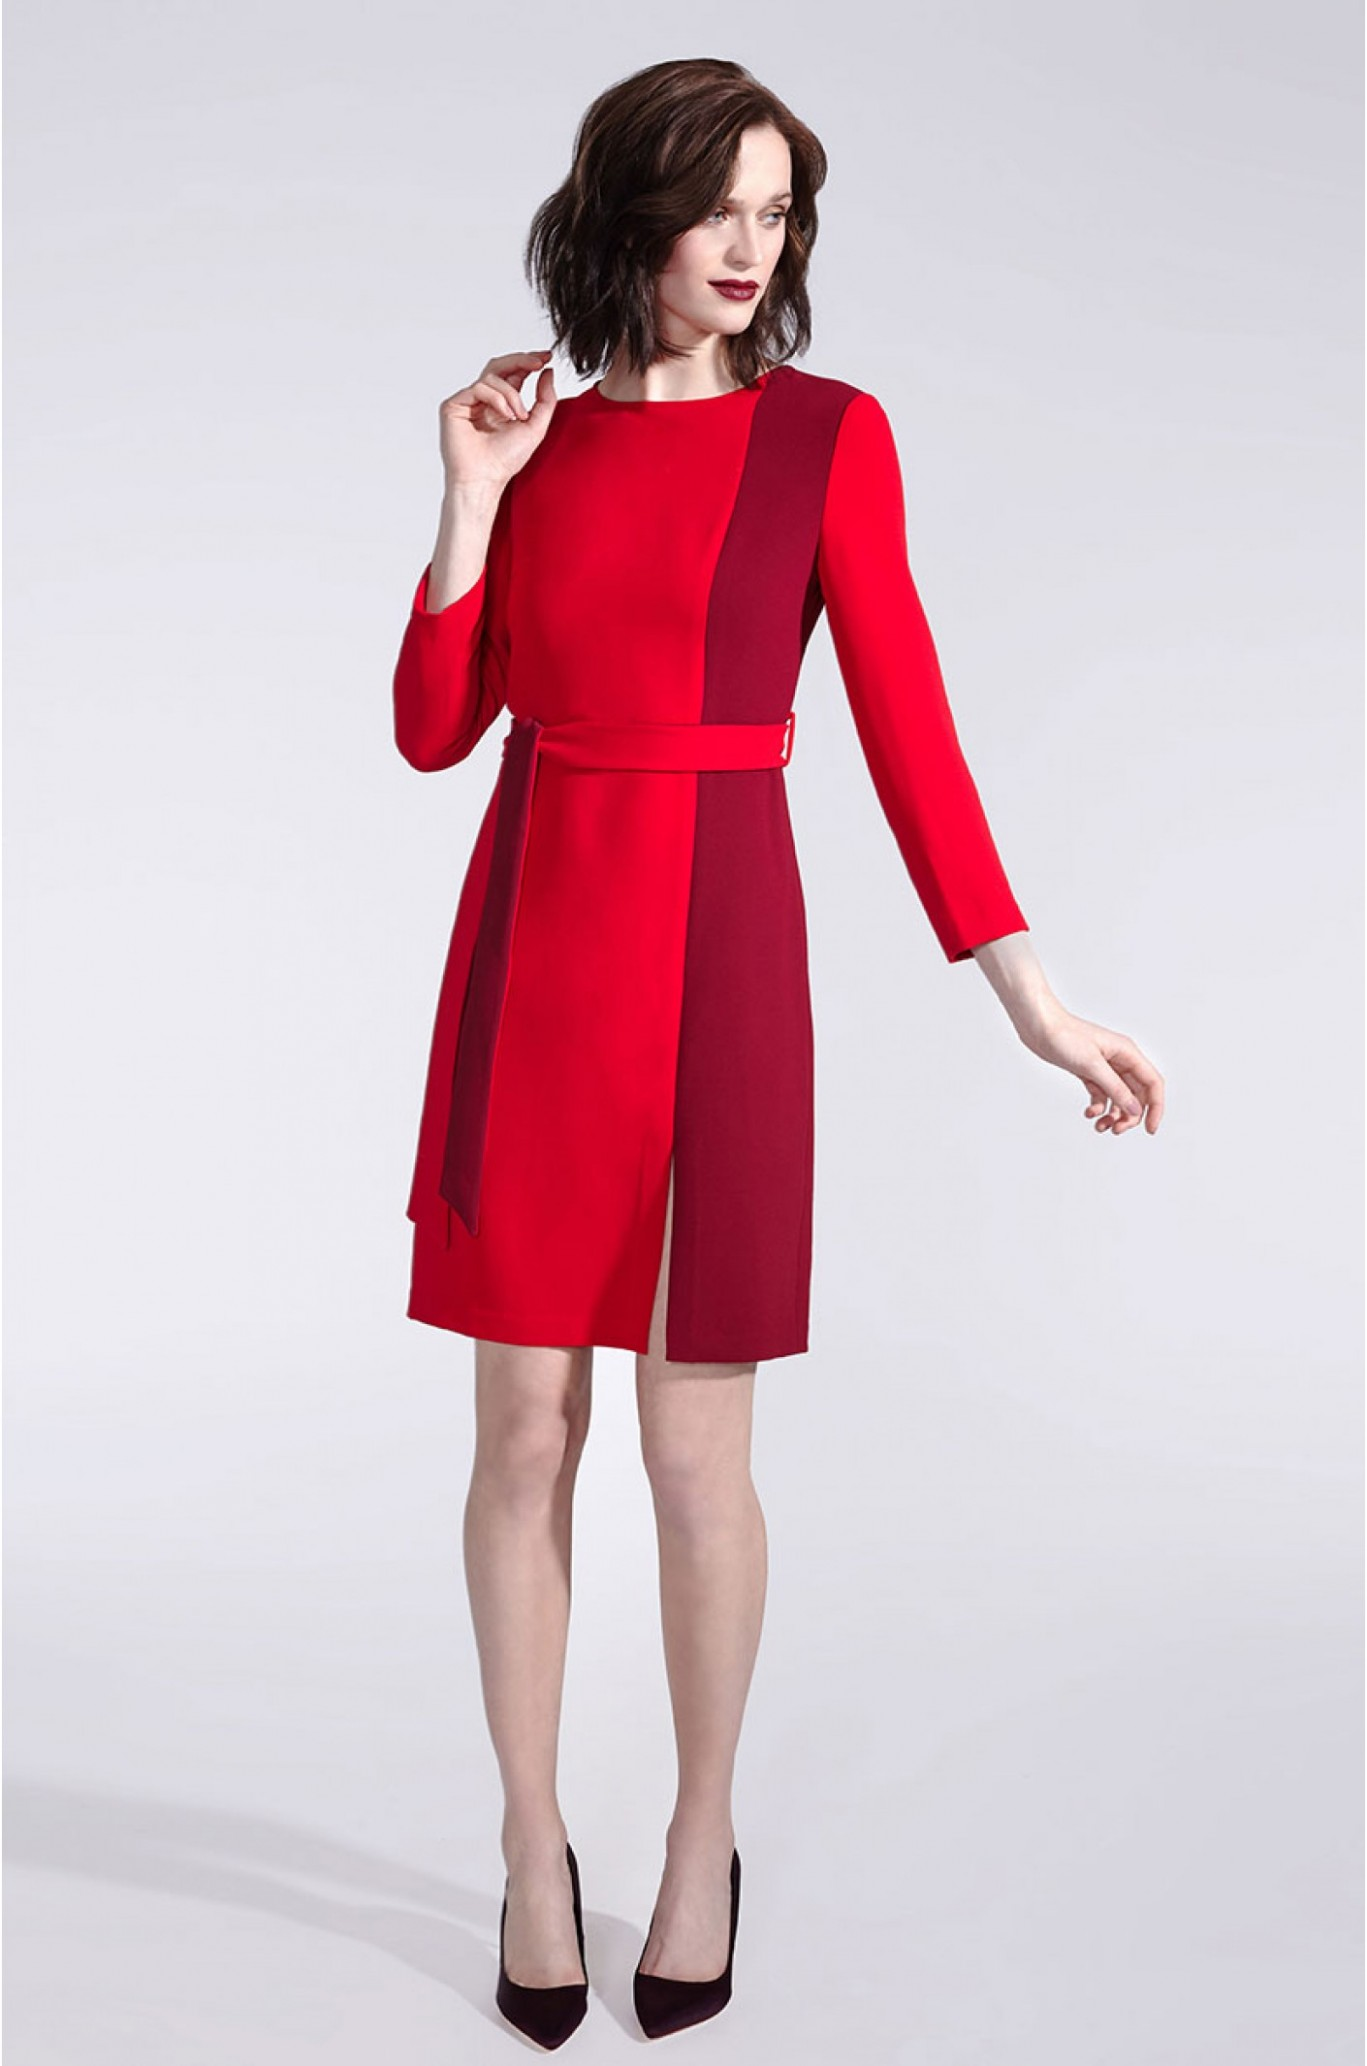 Rotes Businesskleid Mit Langarm Rotes Kleid Langarm